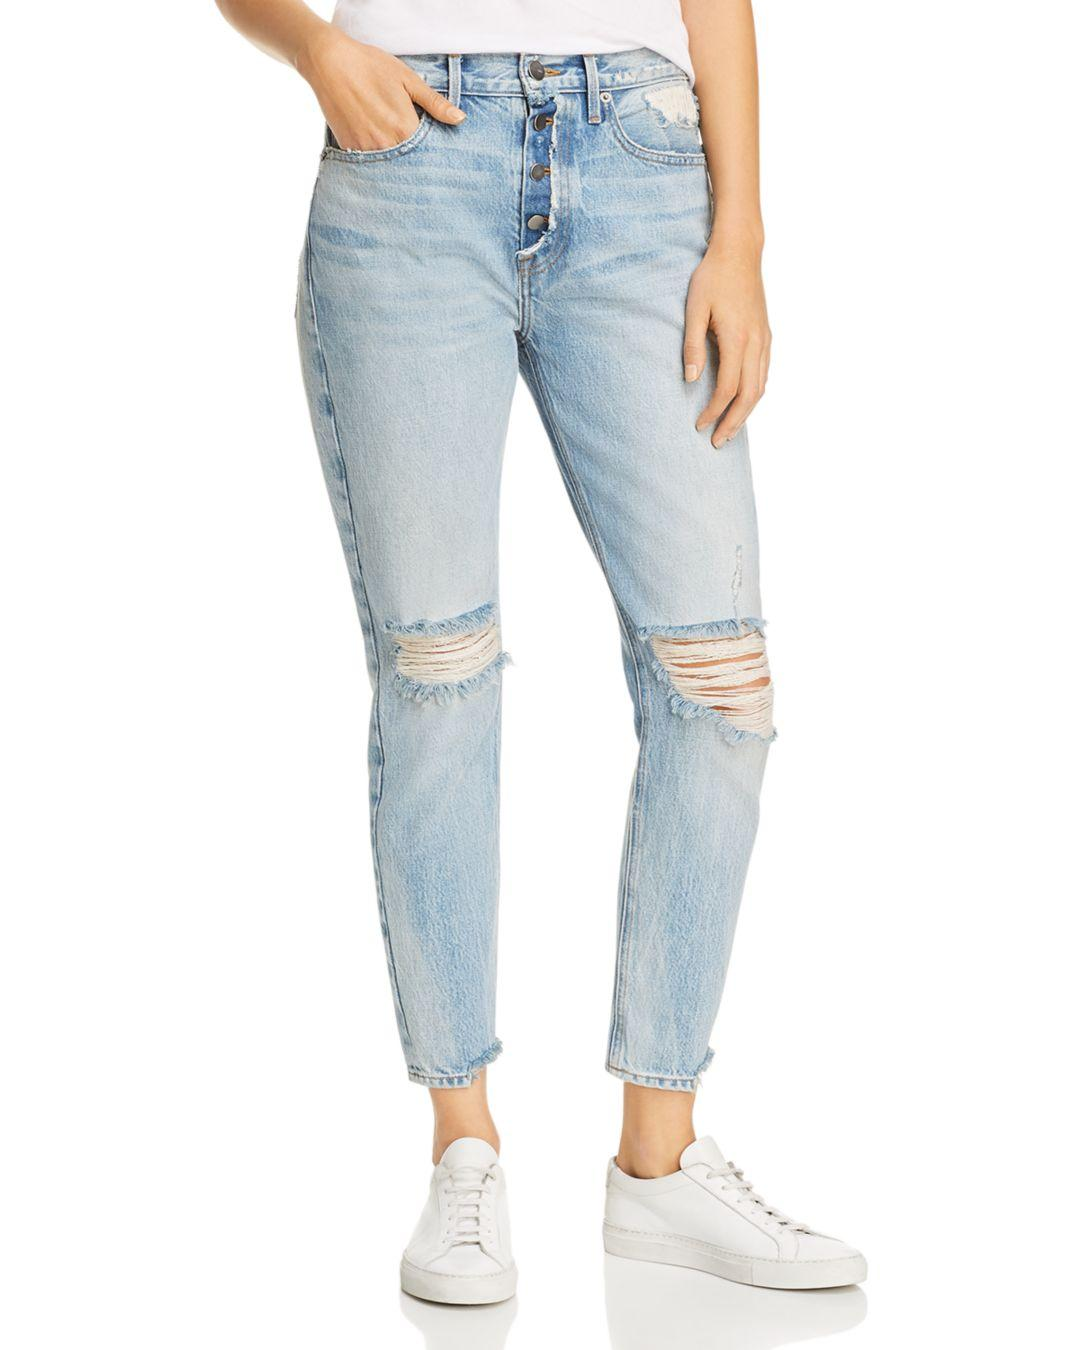 34e695685594 Lyst - FRAME Le Original Rigid Re-release Distressed Skinny Jeans In ...